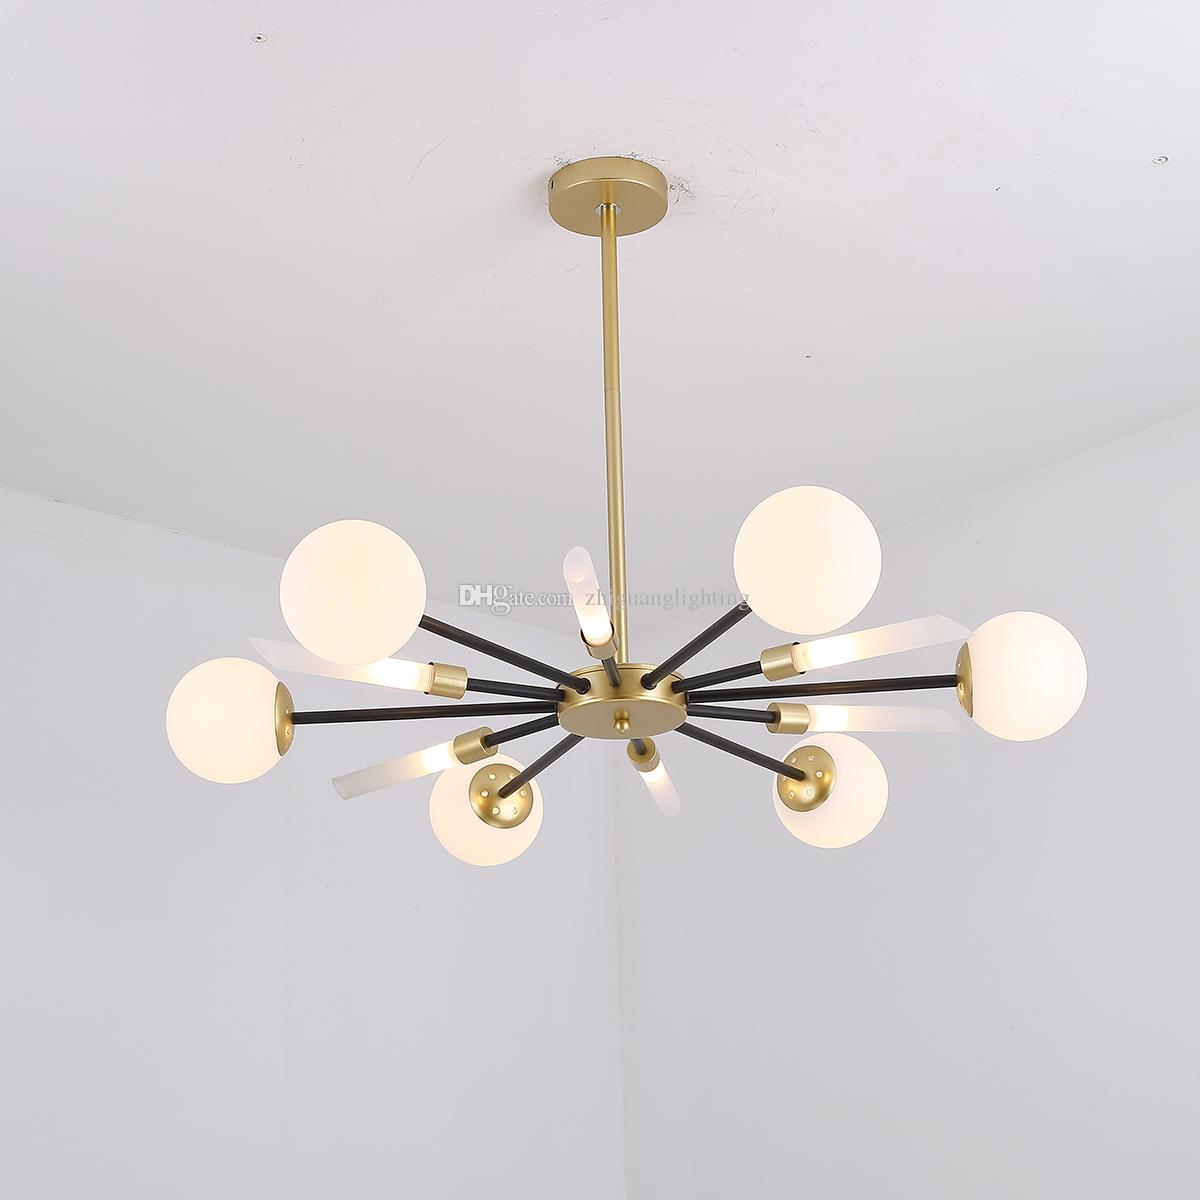 gold chandelier living room lamp creative restaurant light light rh dhgate com